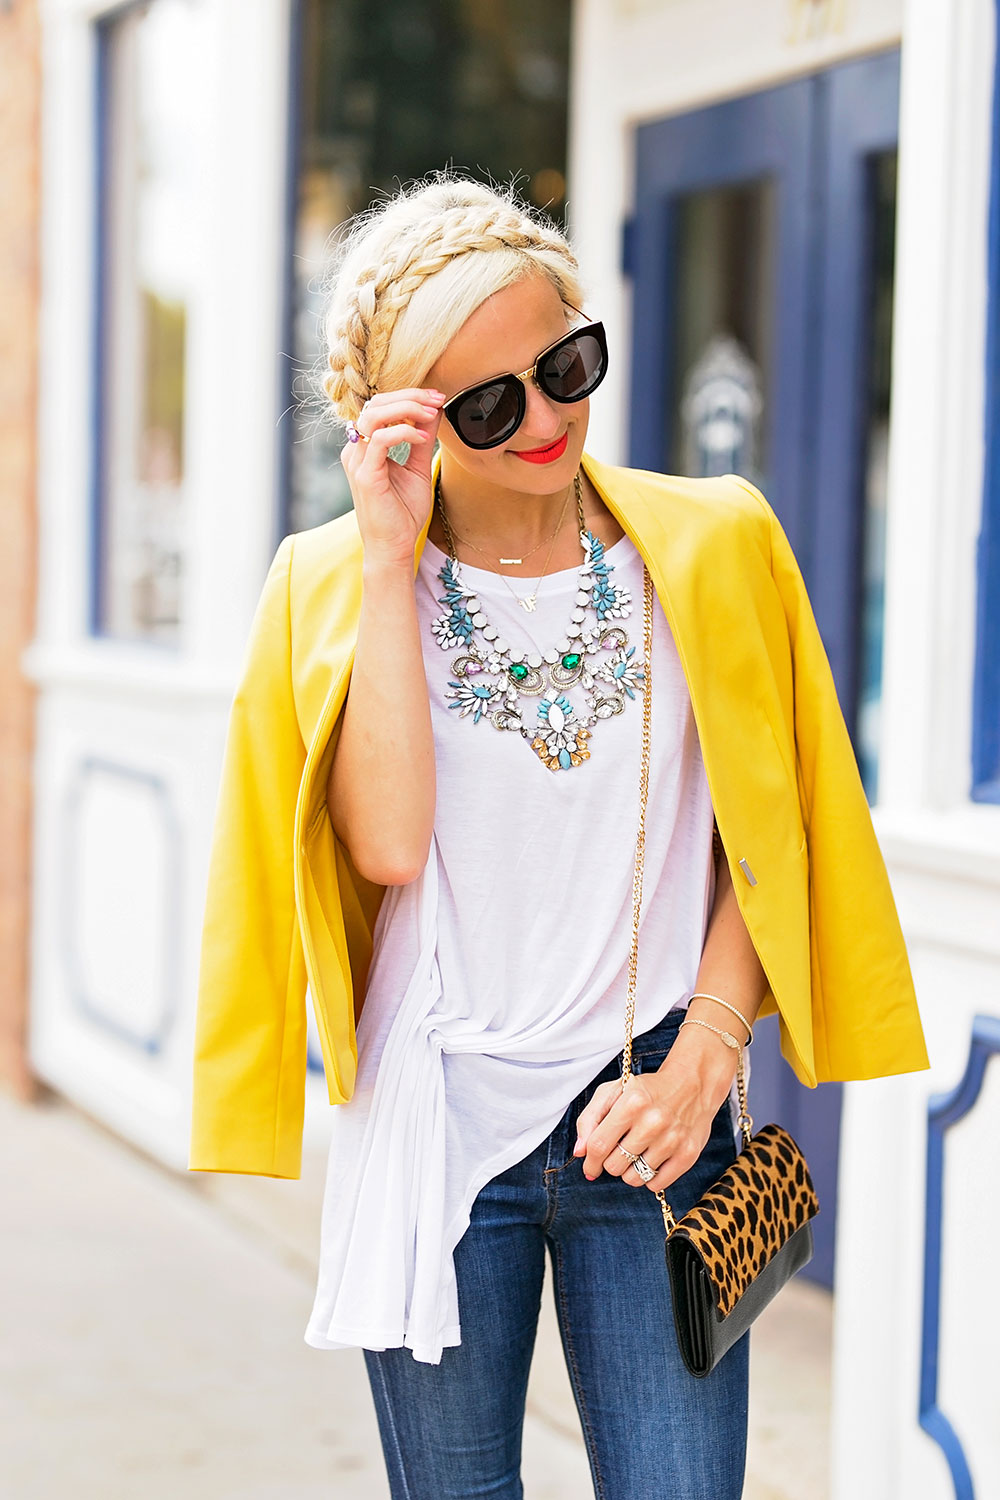 statement necklace t-shirt jeans outfit